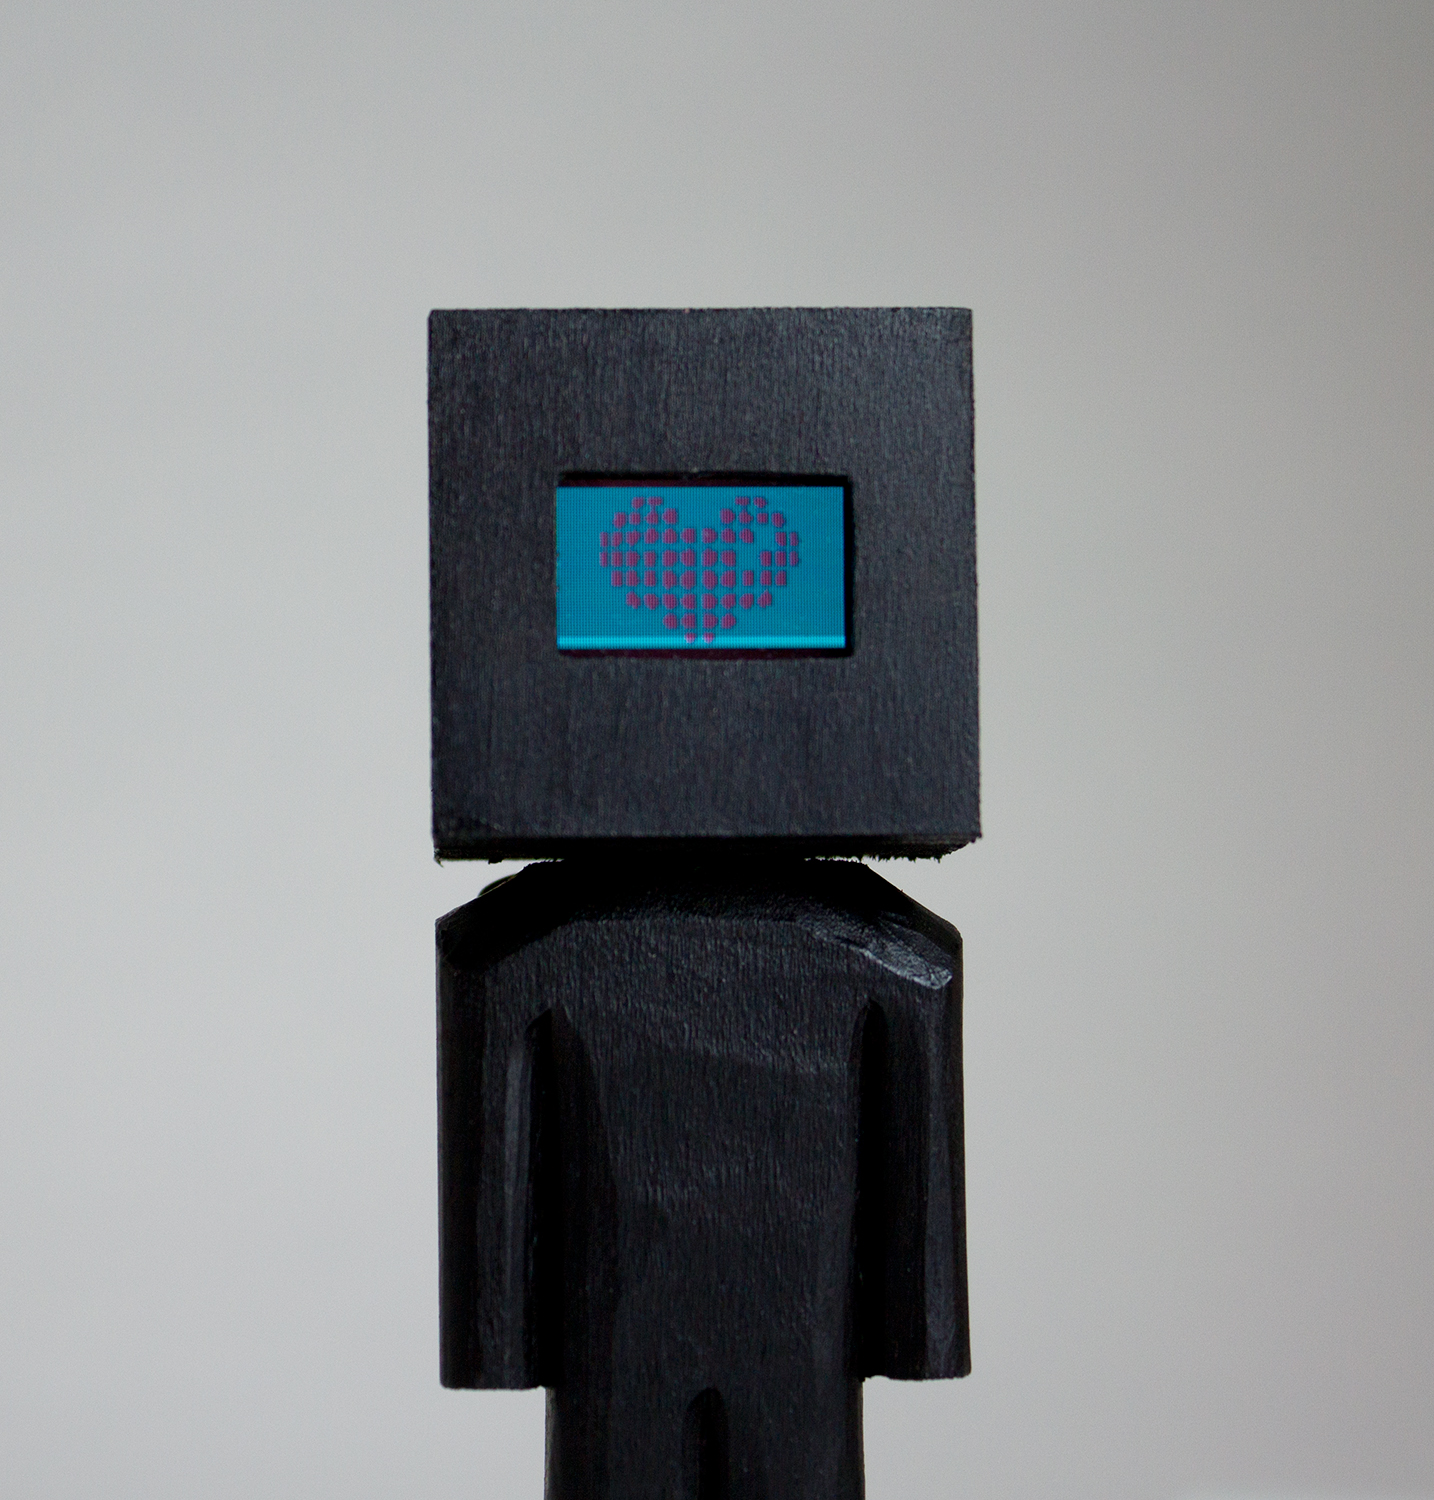 """""""Glitched Head"""" Collaboration with AtlTvHead. Basswood, acrylic, and digital components. 5.25 x 1.5 x 1.5 inches. CSK 020G"""